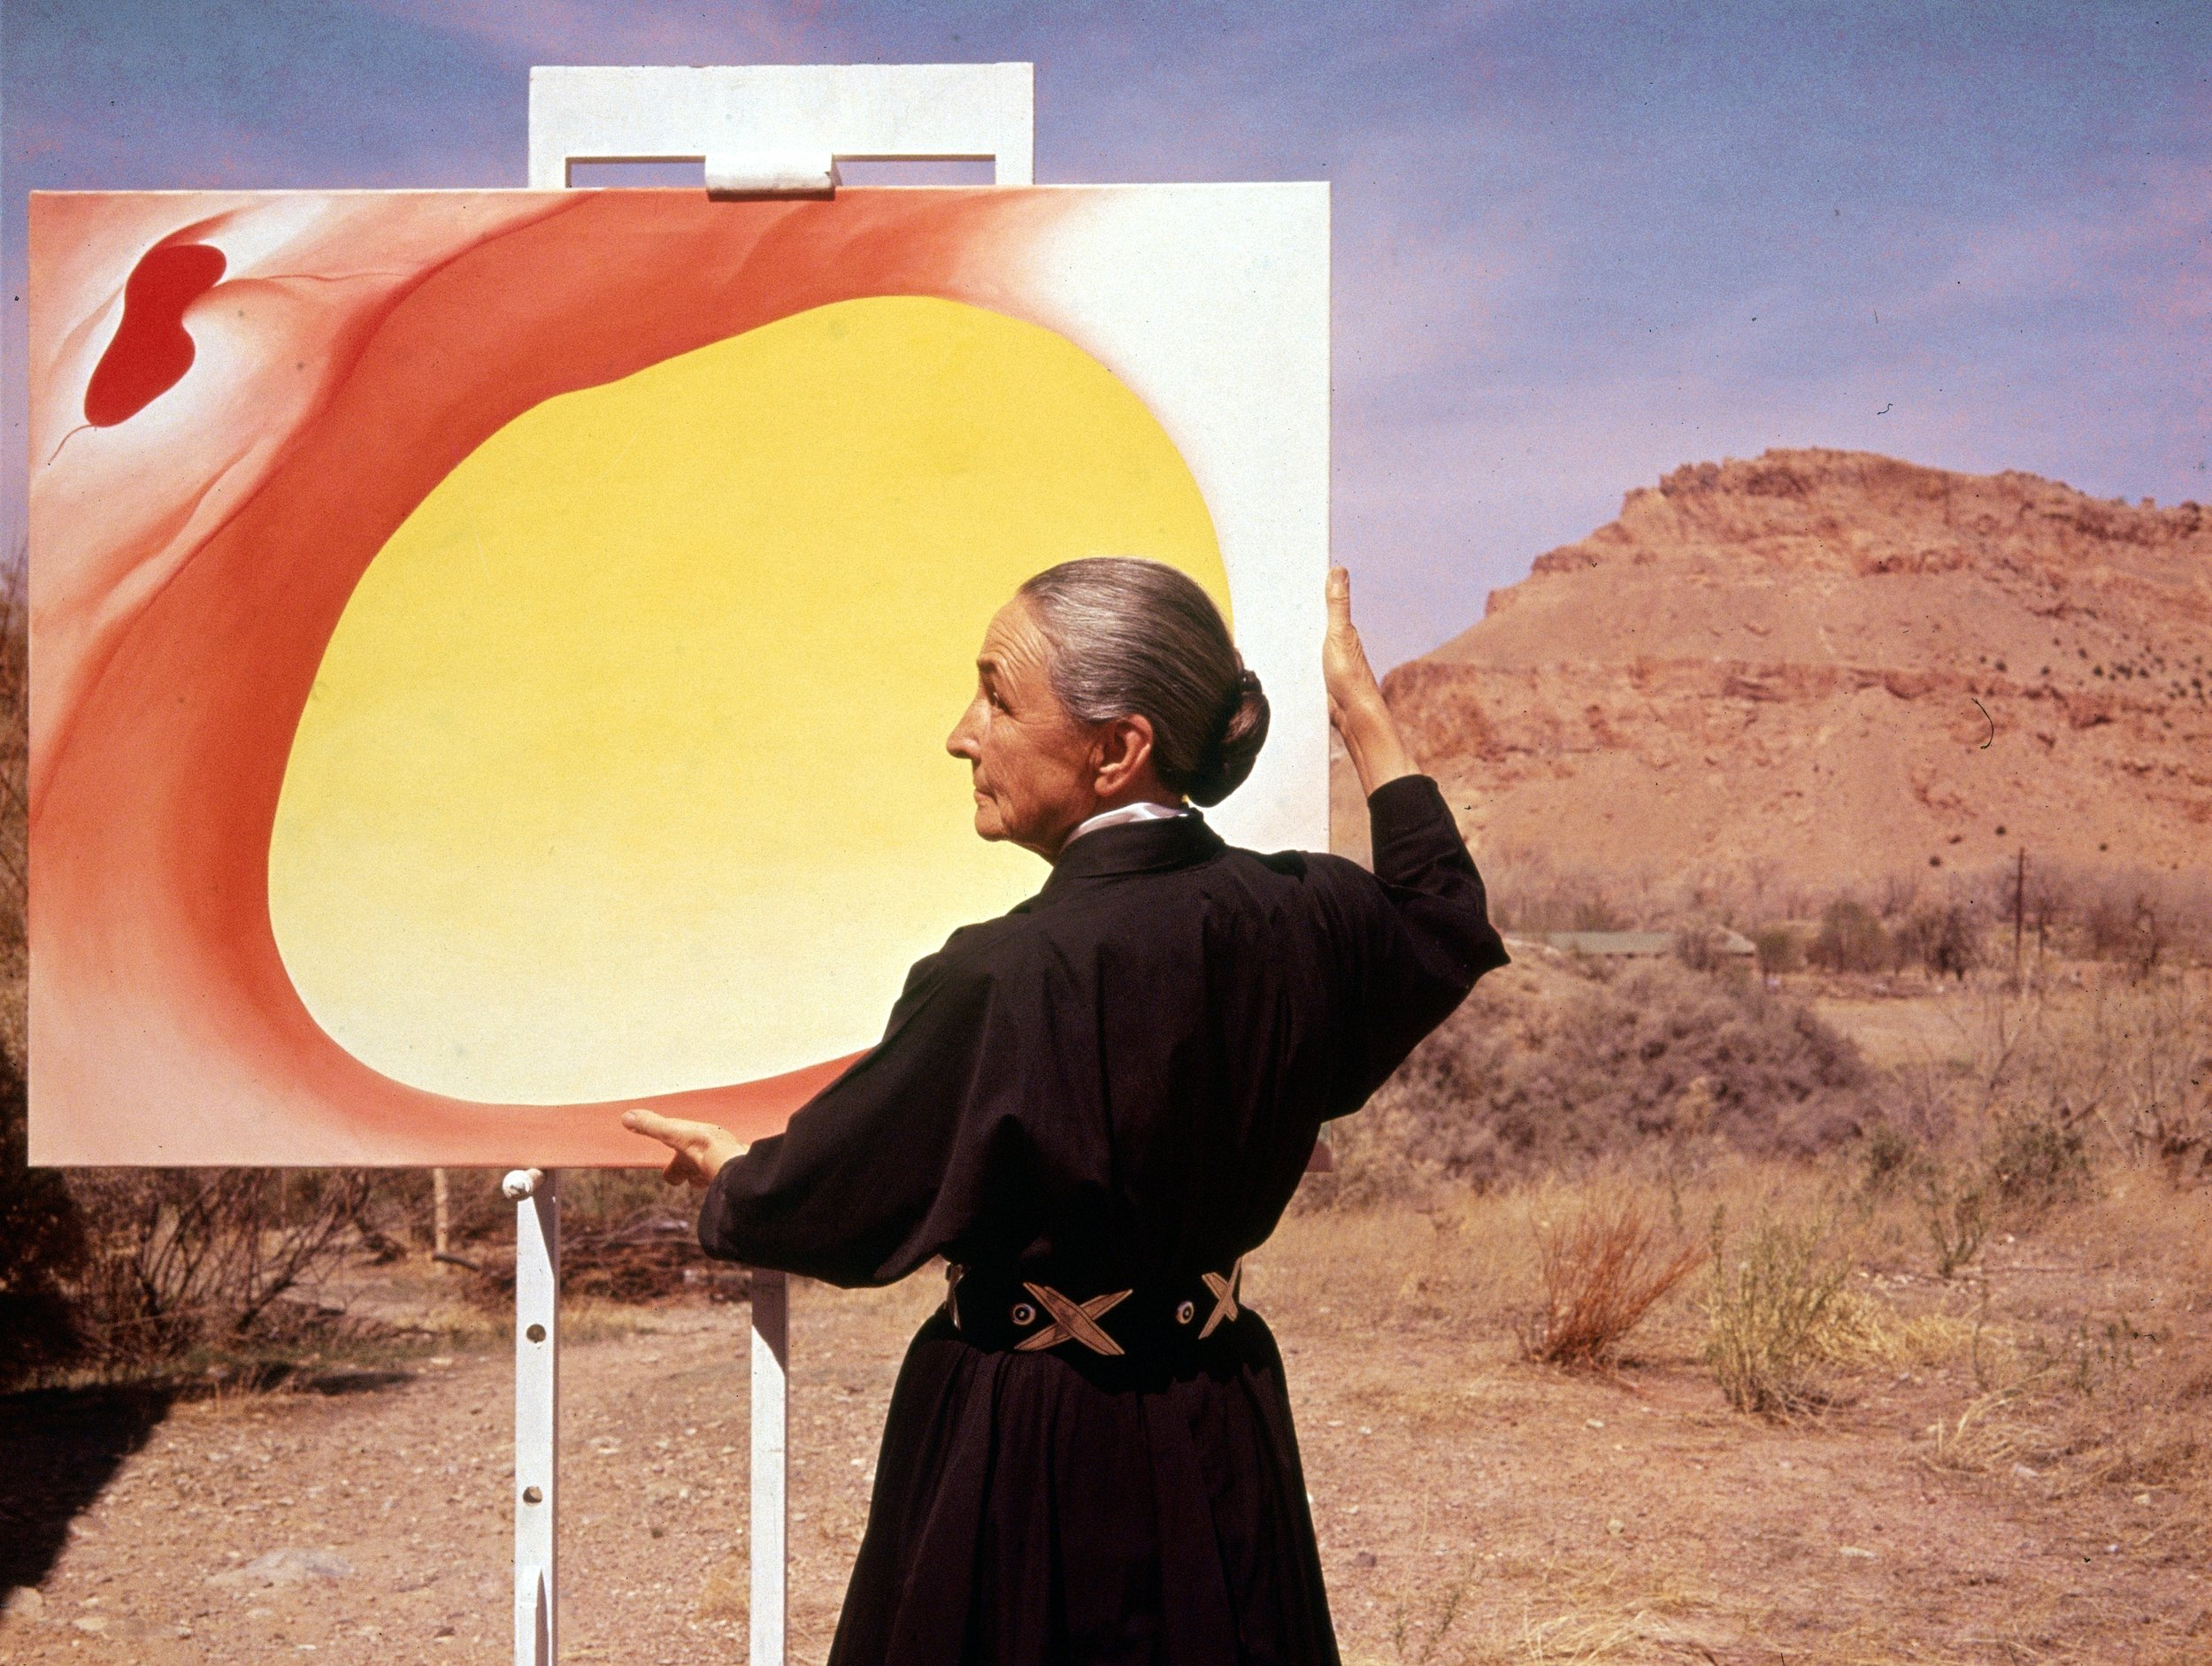 Georgia O'Keeffe at her outdoor easel in Albuquerque, New Mexico; 1960  Tony Vaccaro/Getty Images